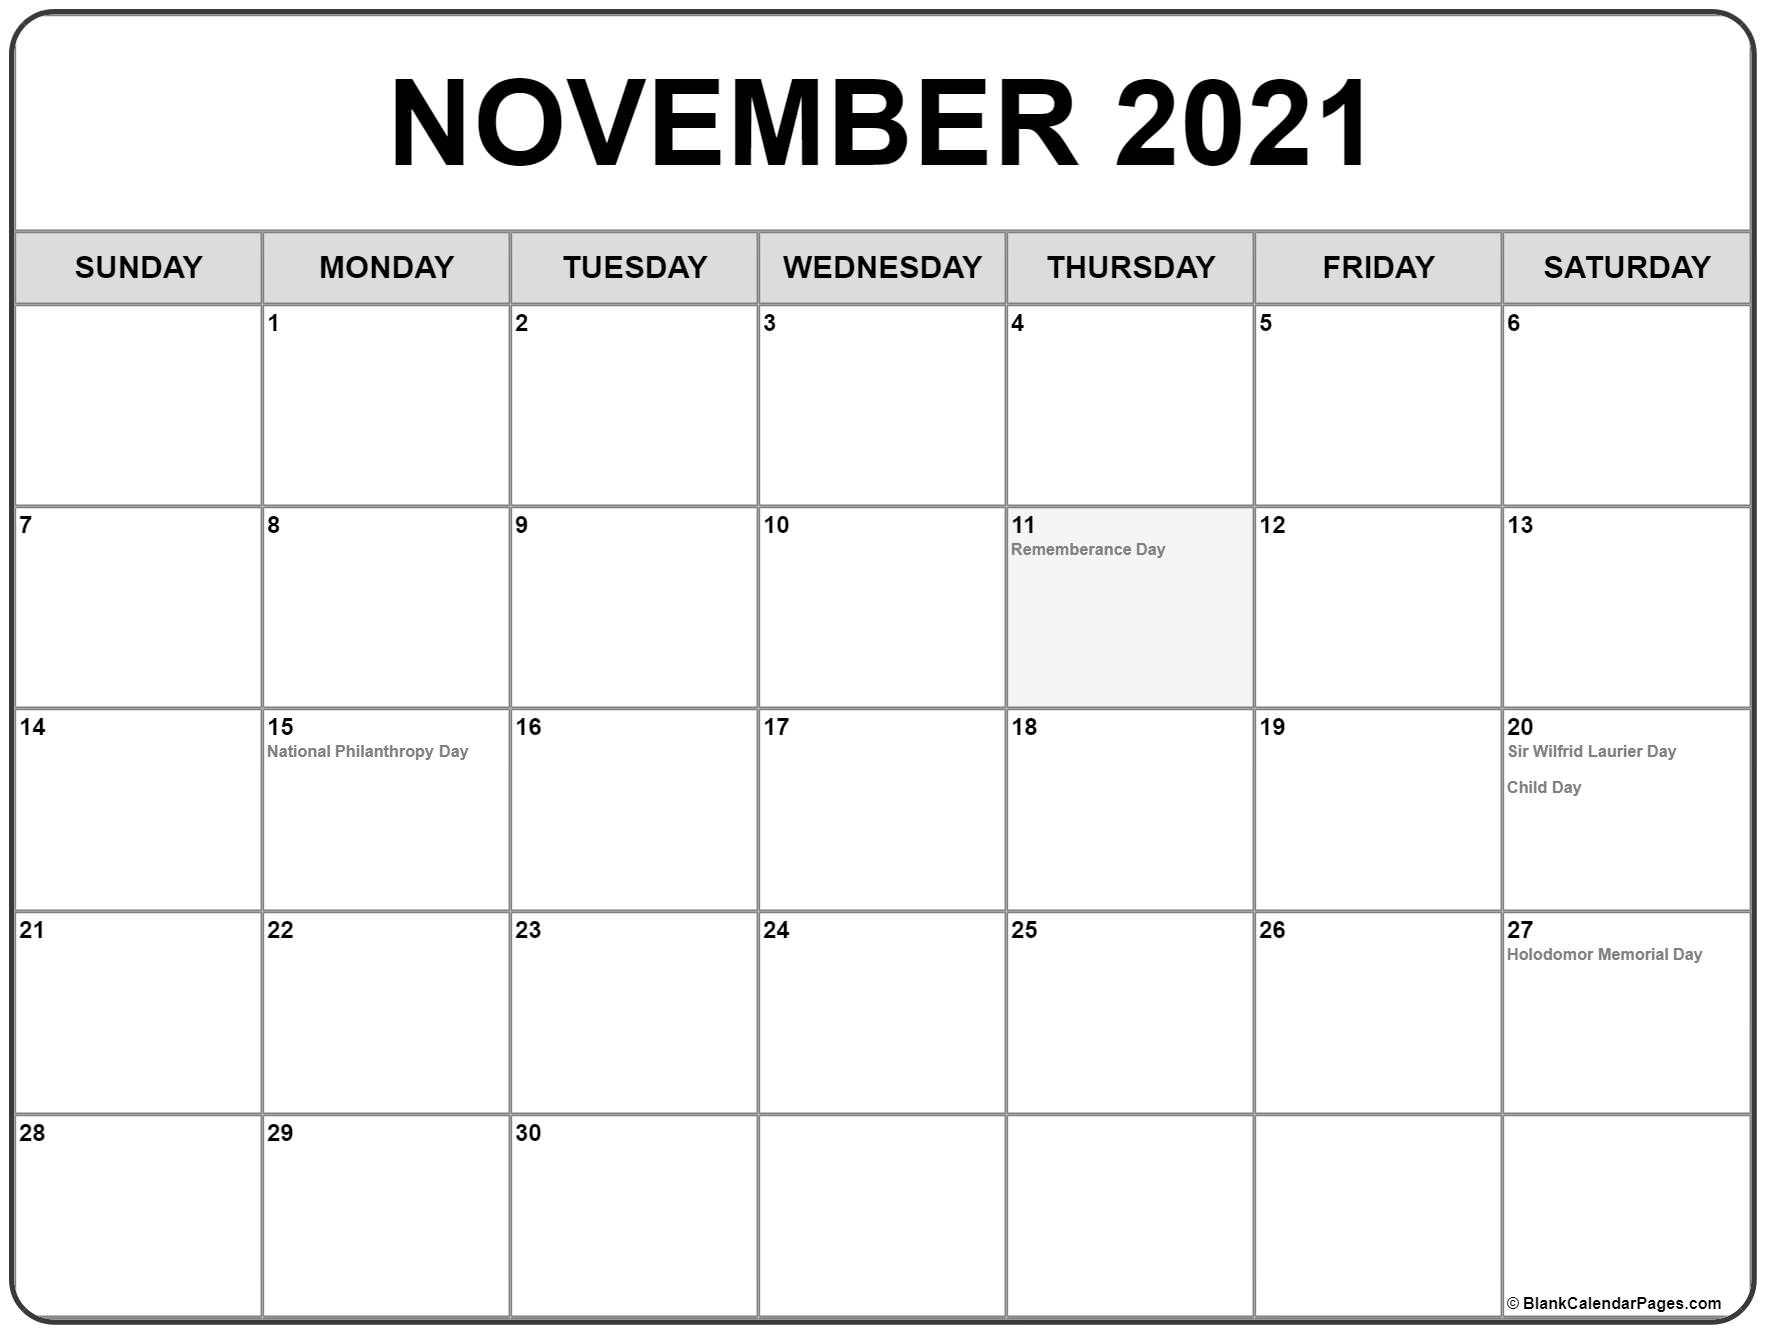 November 2021 Calendar With Holidays